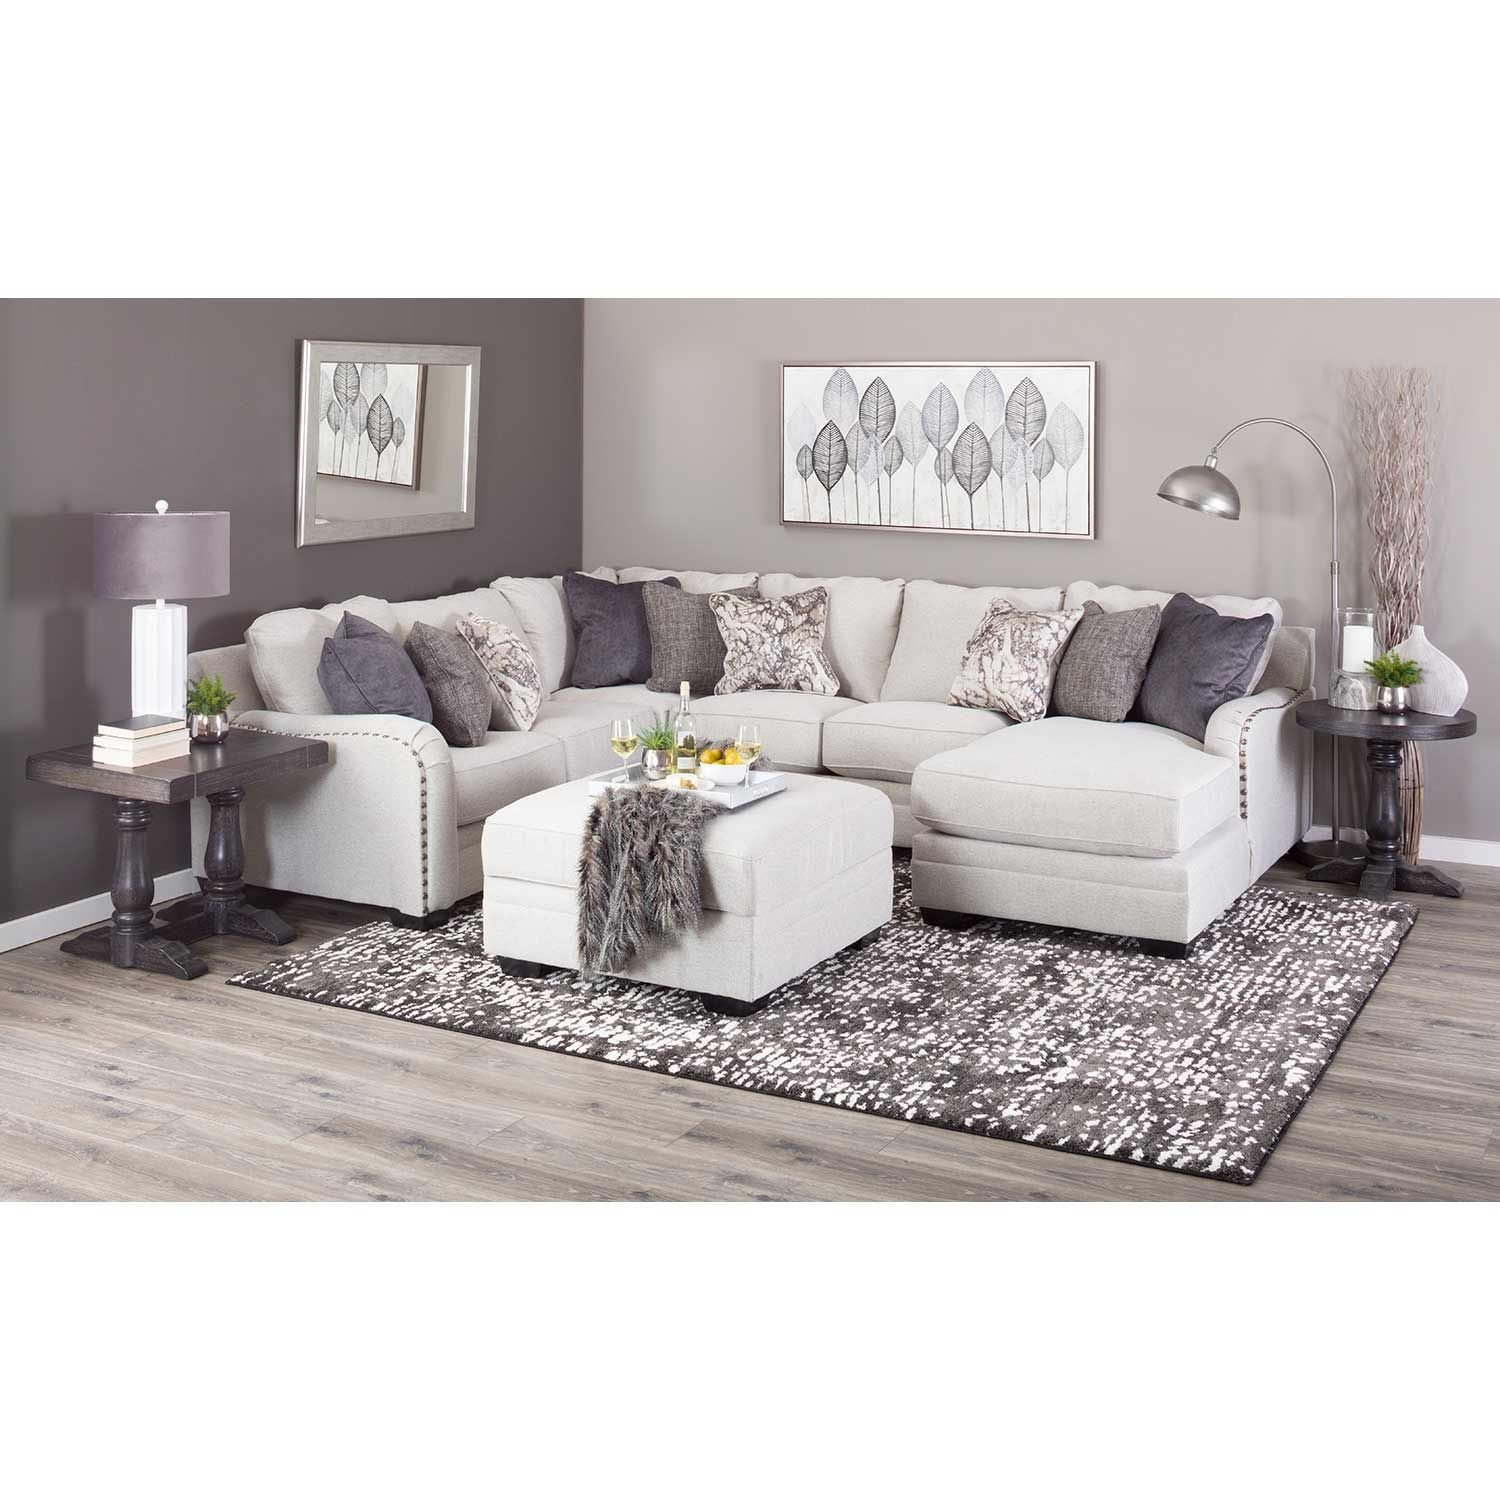 Picture of Dellara 4PC Sectional with RAF Chaise